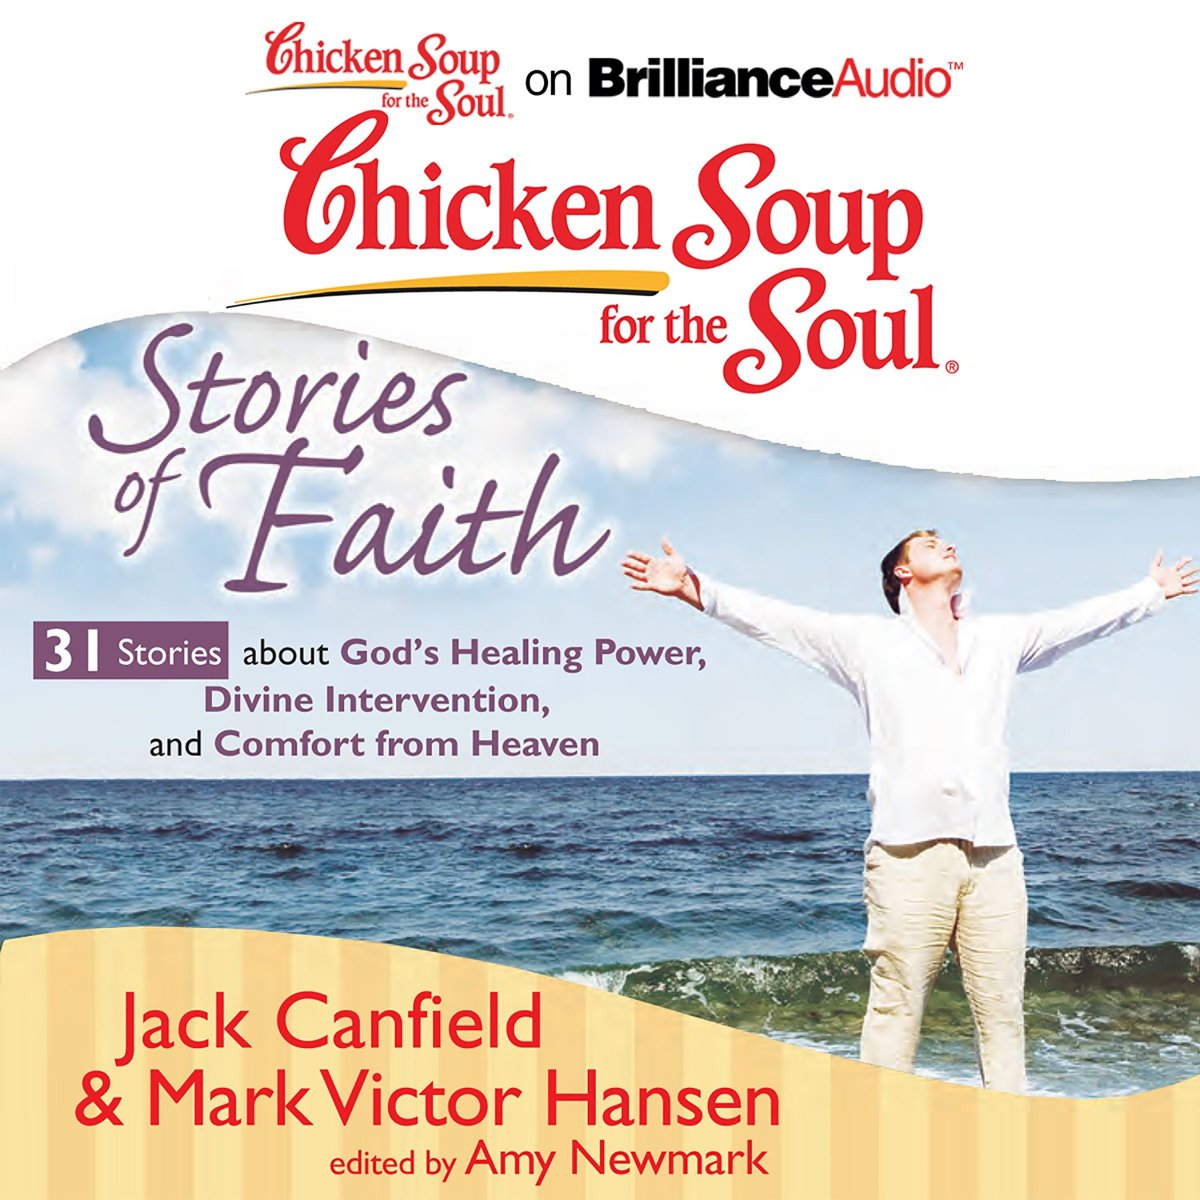 Chicken Soup for the Soul: Stories of Faith - 31 Stories about God's Healing Power, Divine Intervention, and Comfort from Heaven